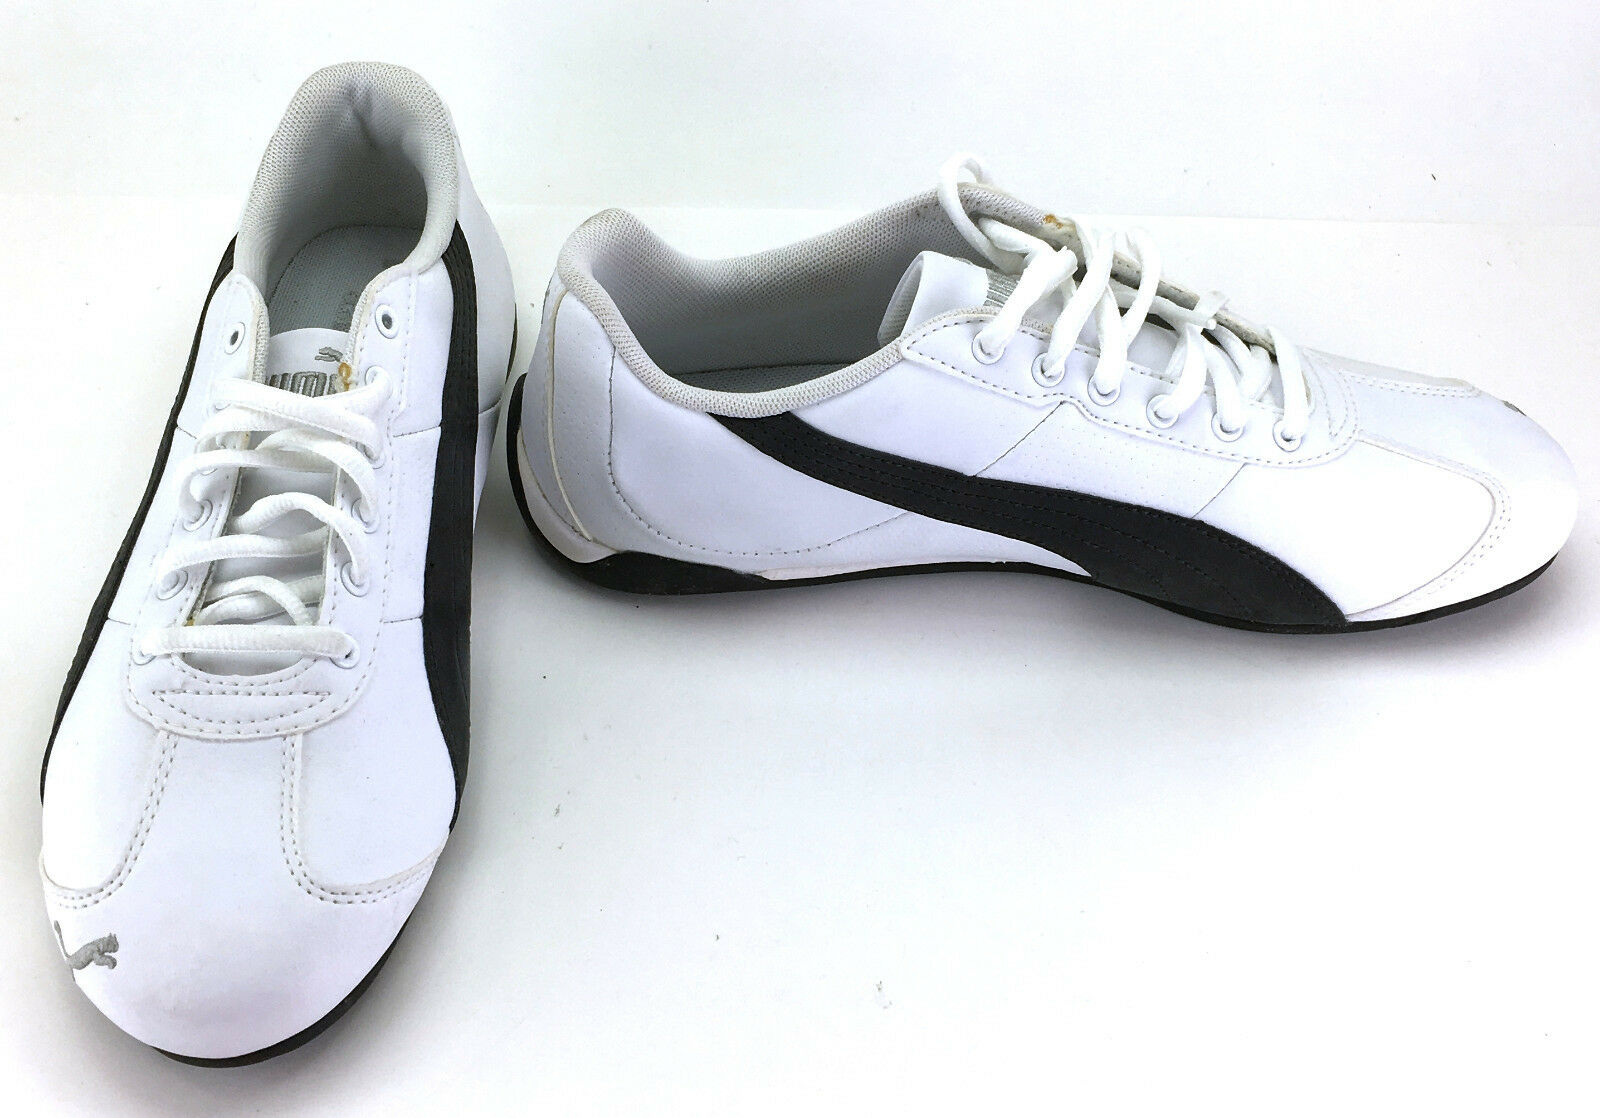 PumaChaussuresRepli Cat III Leather LT blanc Sneakers